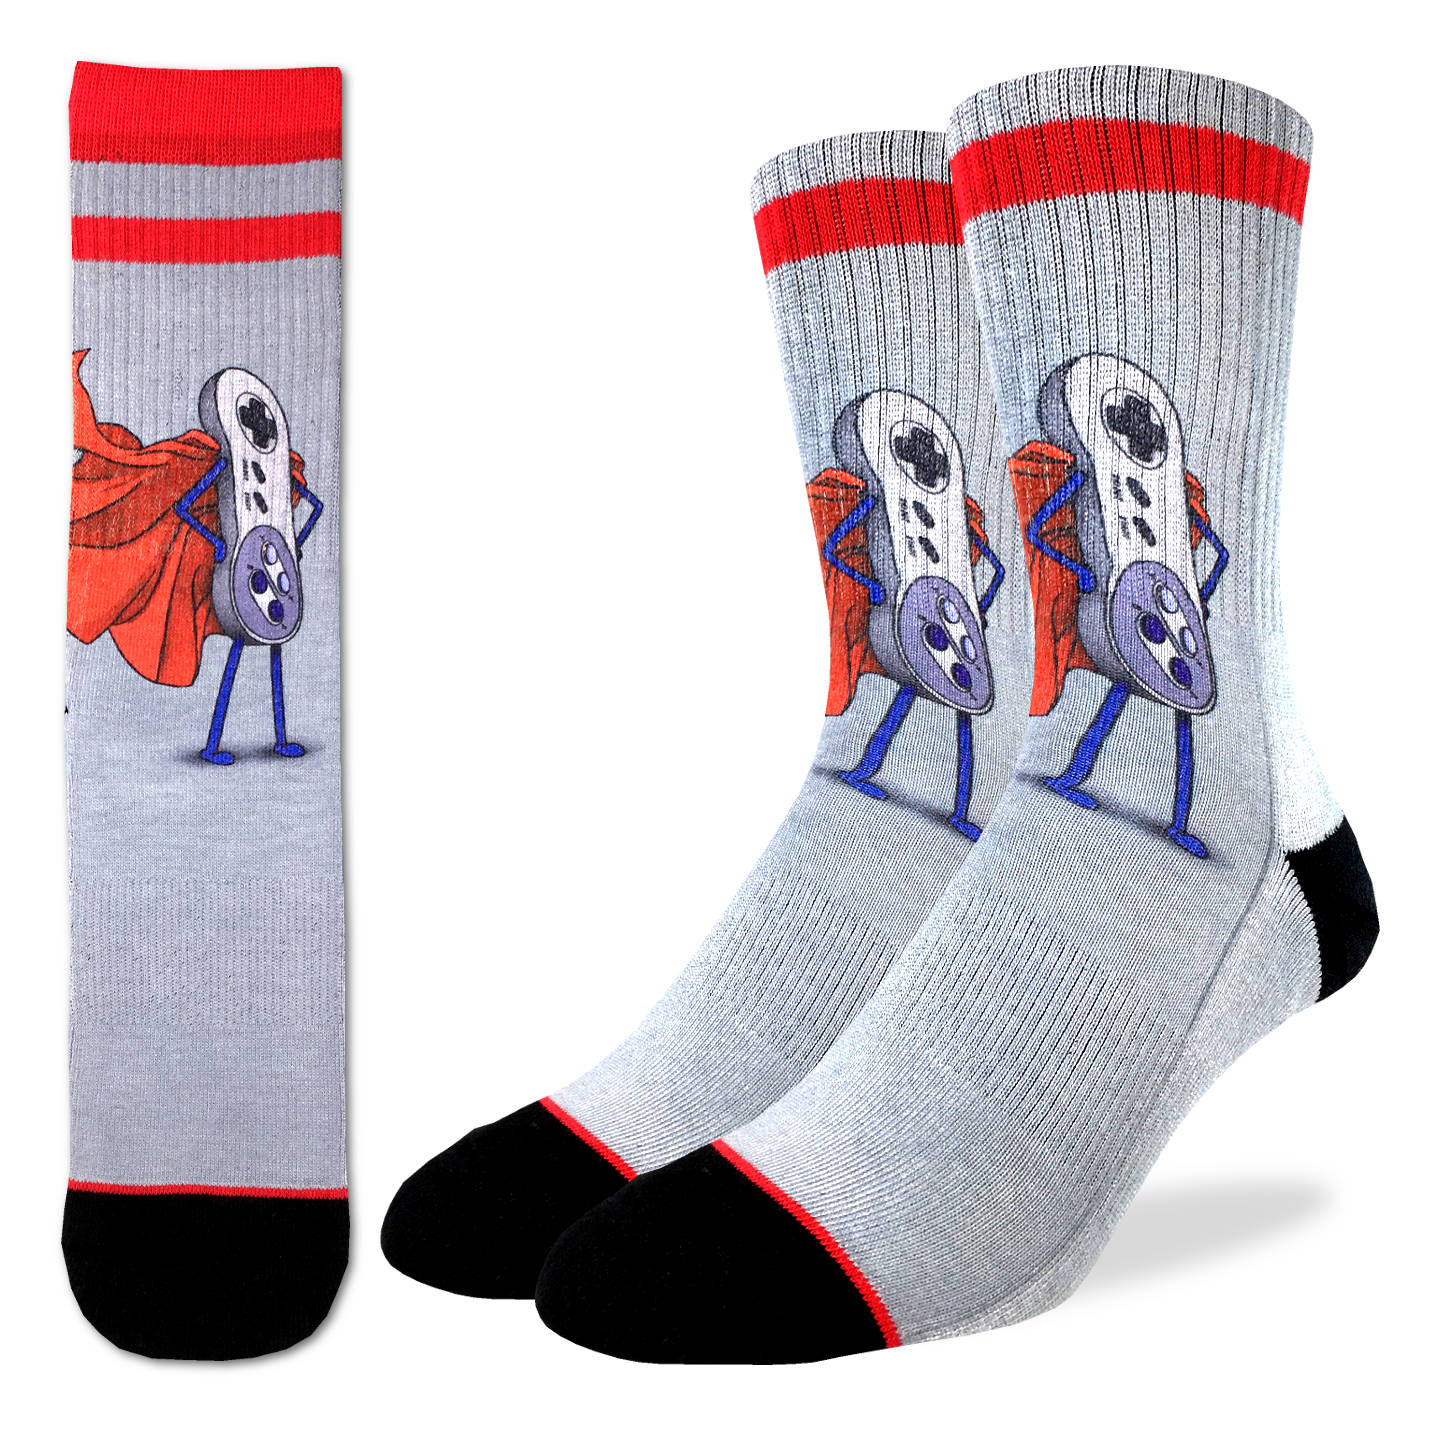 Men's Super NES Socks - Good Luck Sock